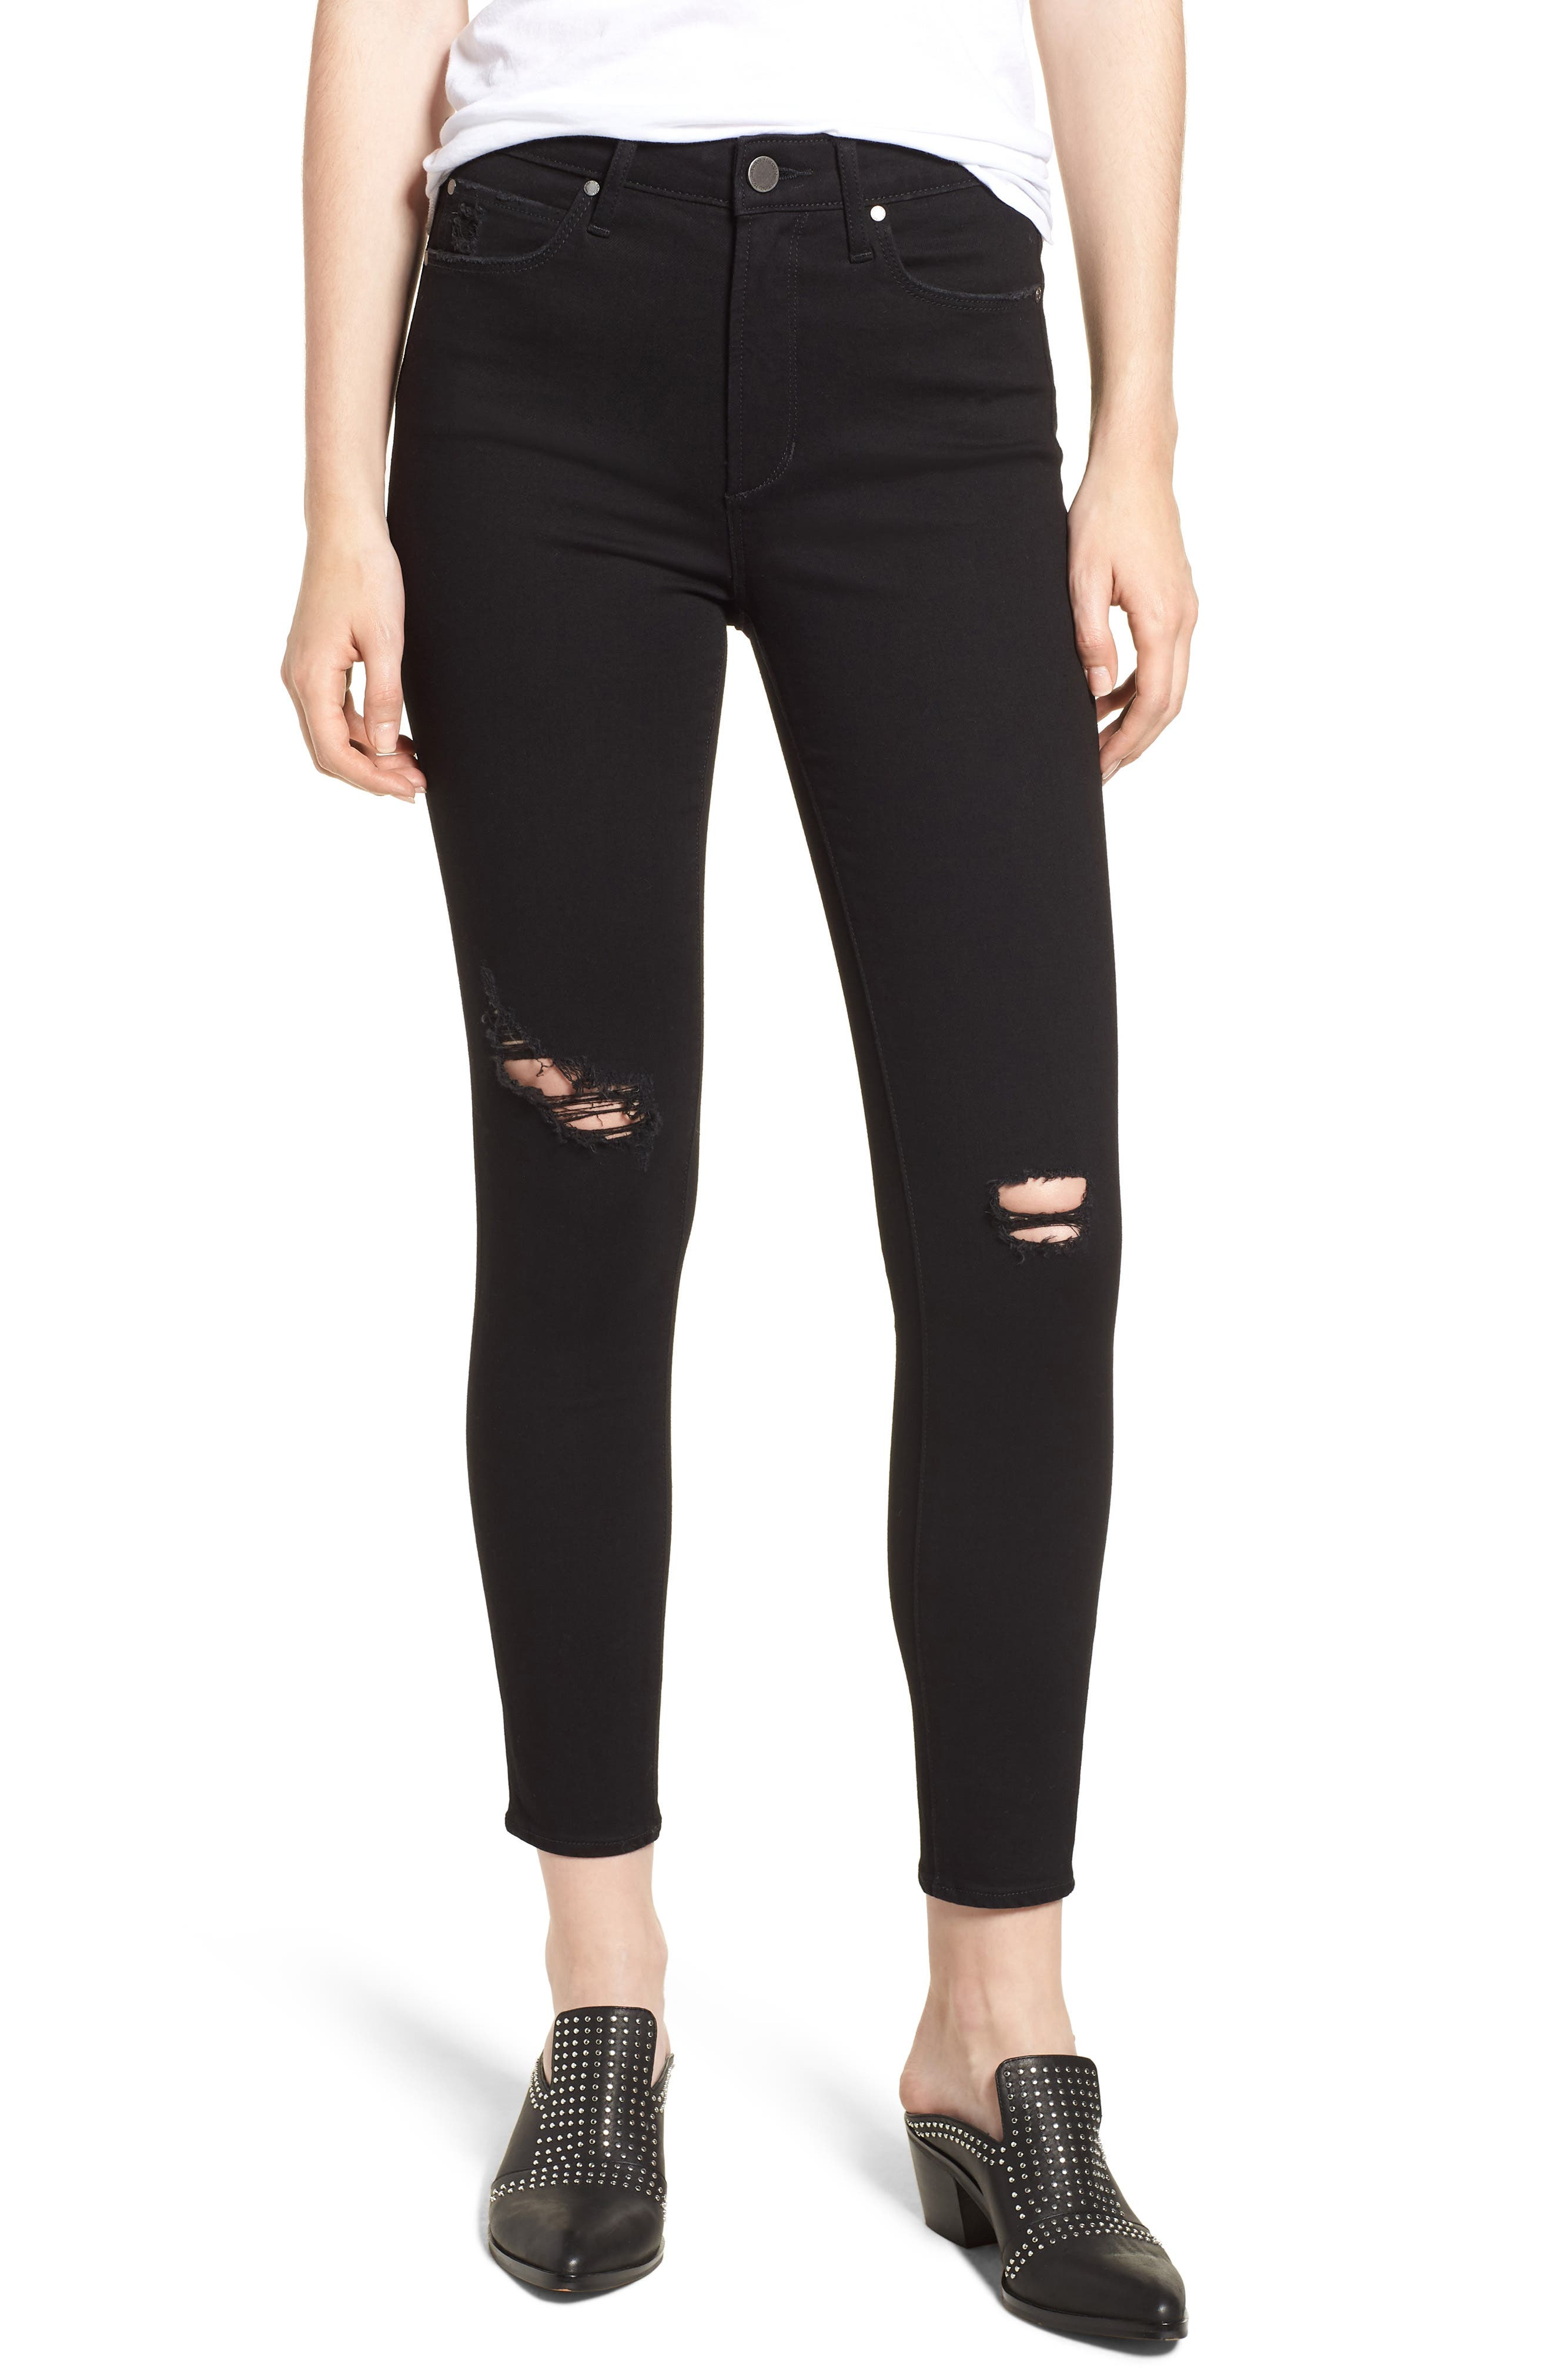 ARTICLES OF SOCIETY Heather Ripped High Rise Jeans in Peterson Decon Black